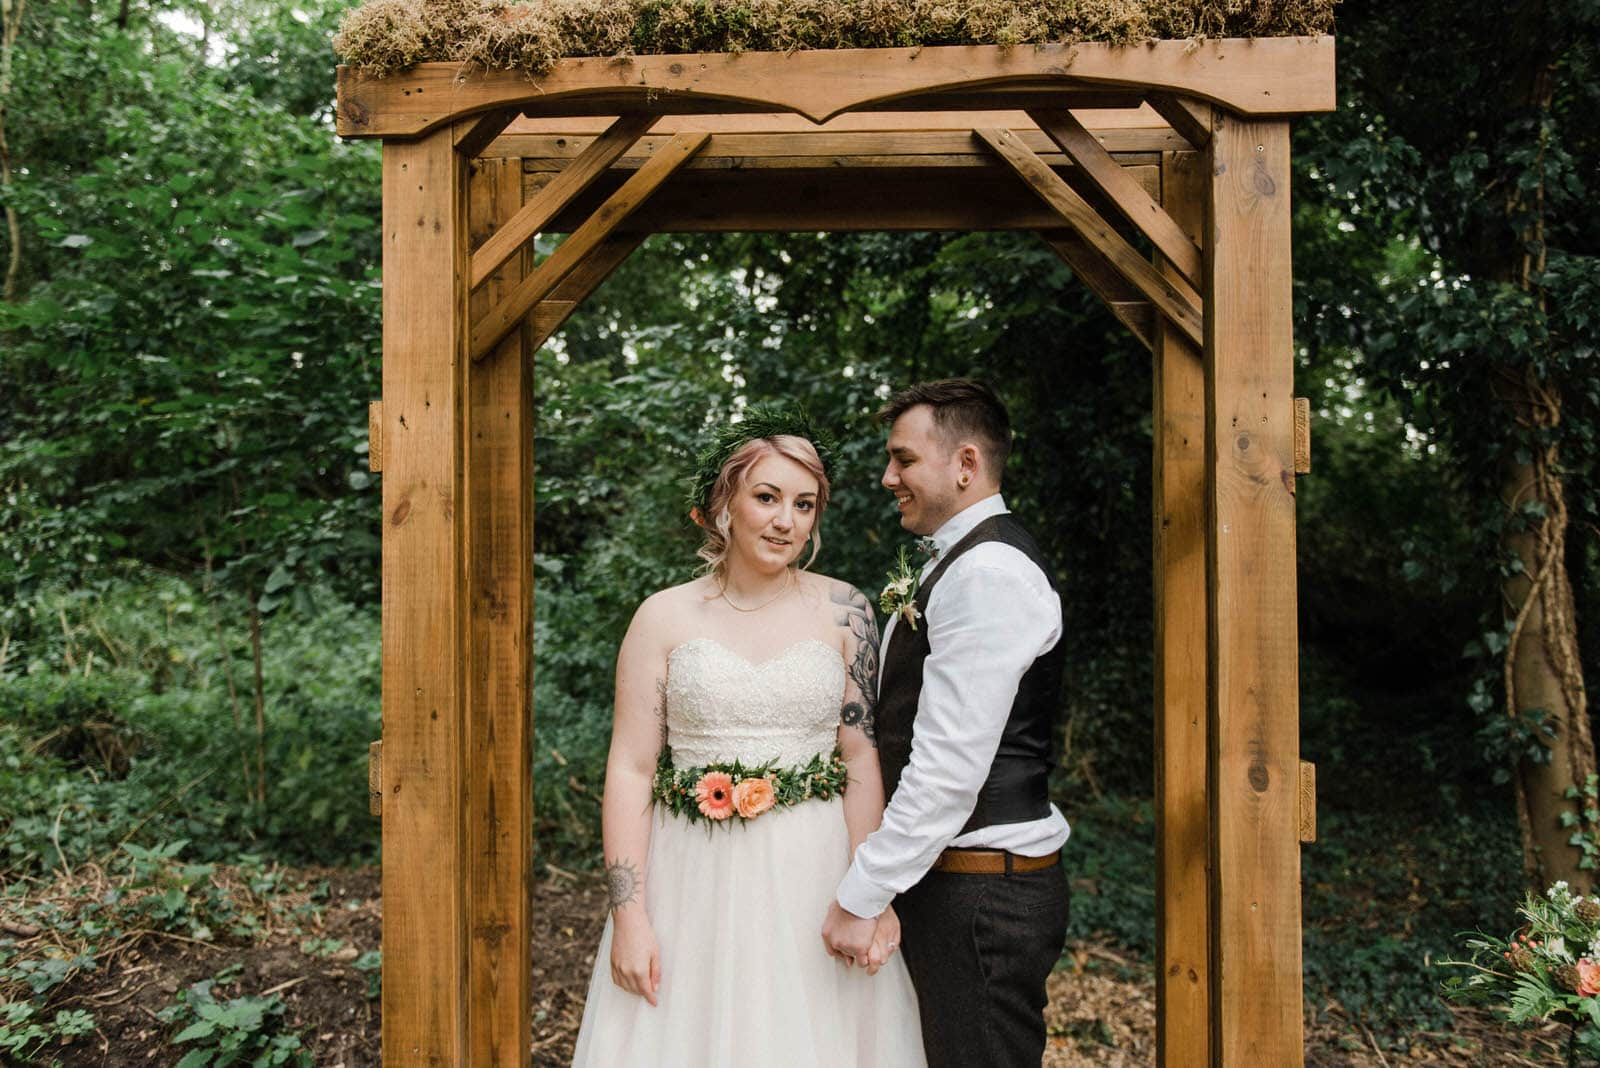 Bride and groom under a wooden archway in a woodland area at Hirst Priory Wedding